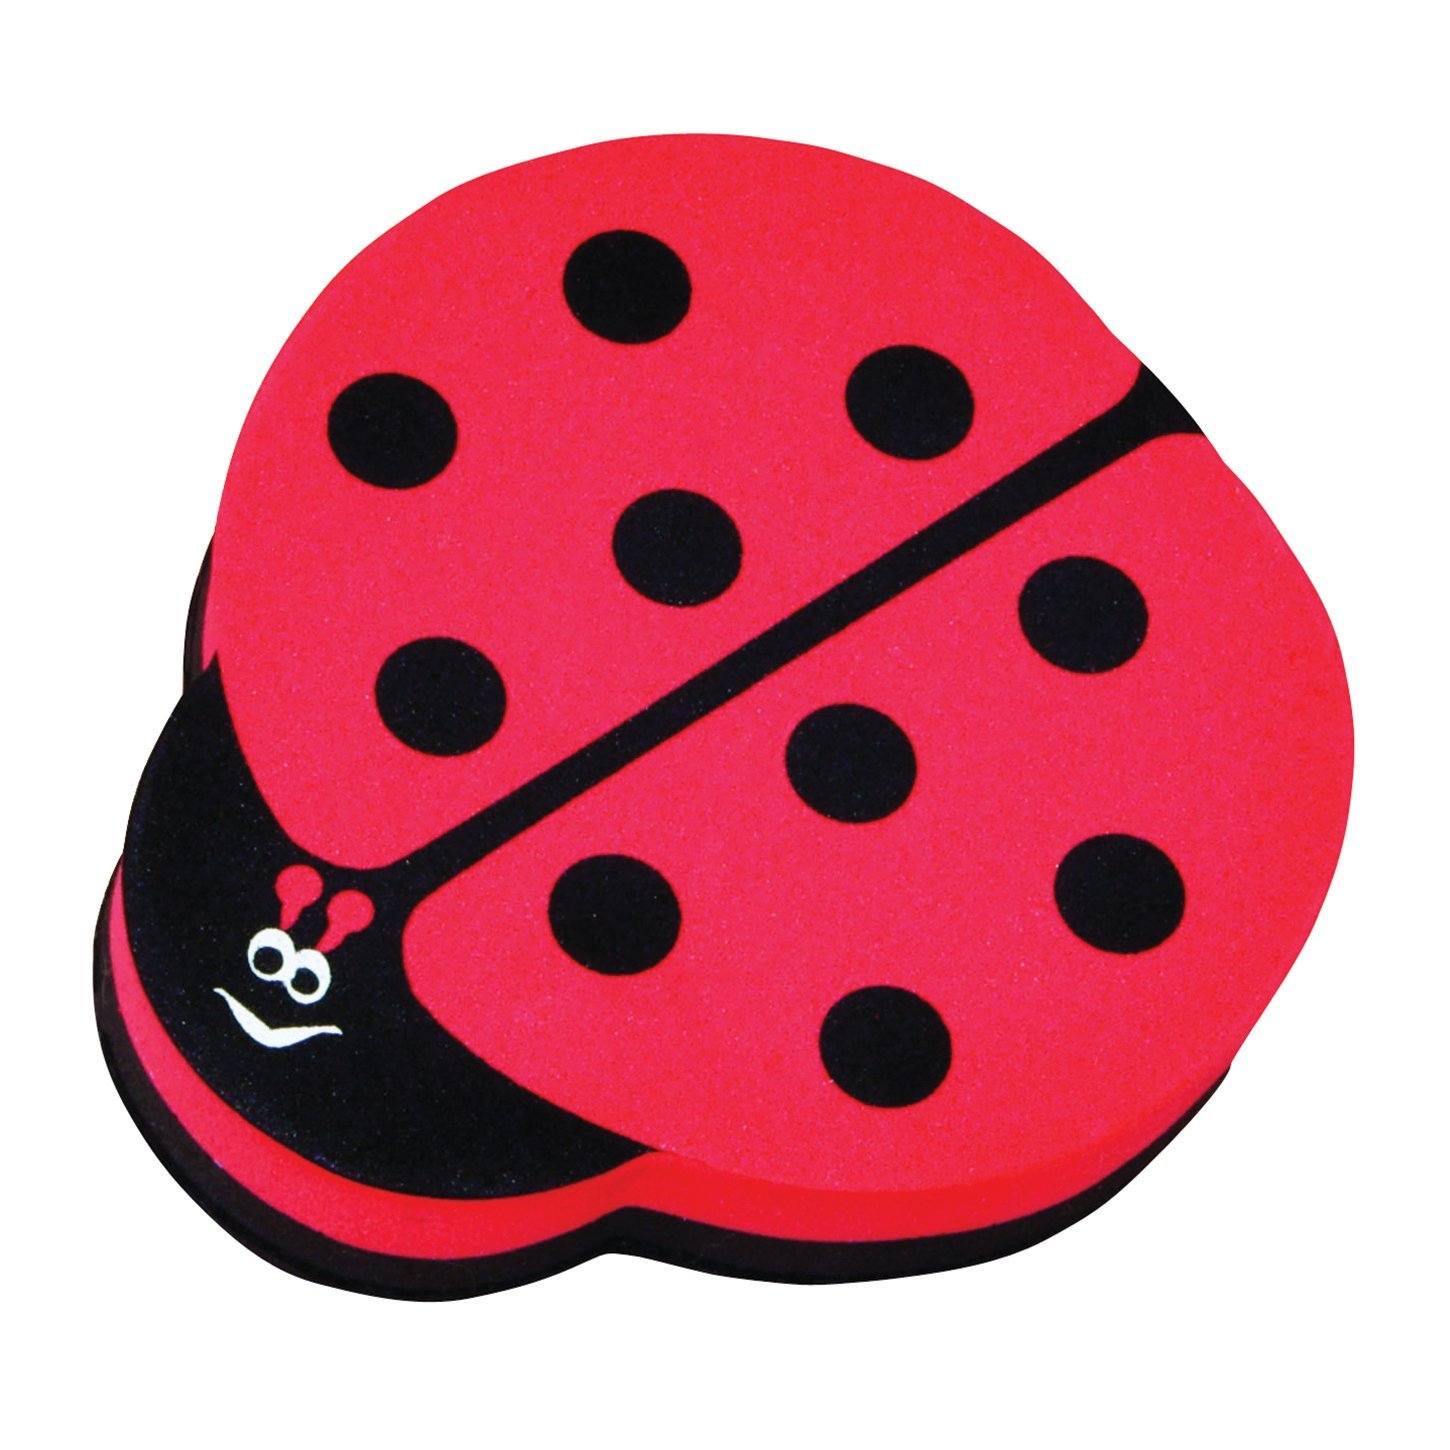 Ladybug Magnetic Whiteboard Eraser by Ashley Productions